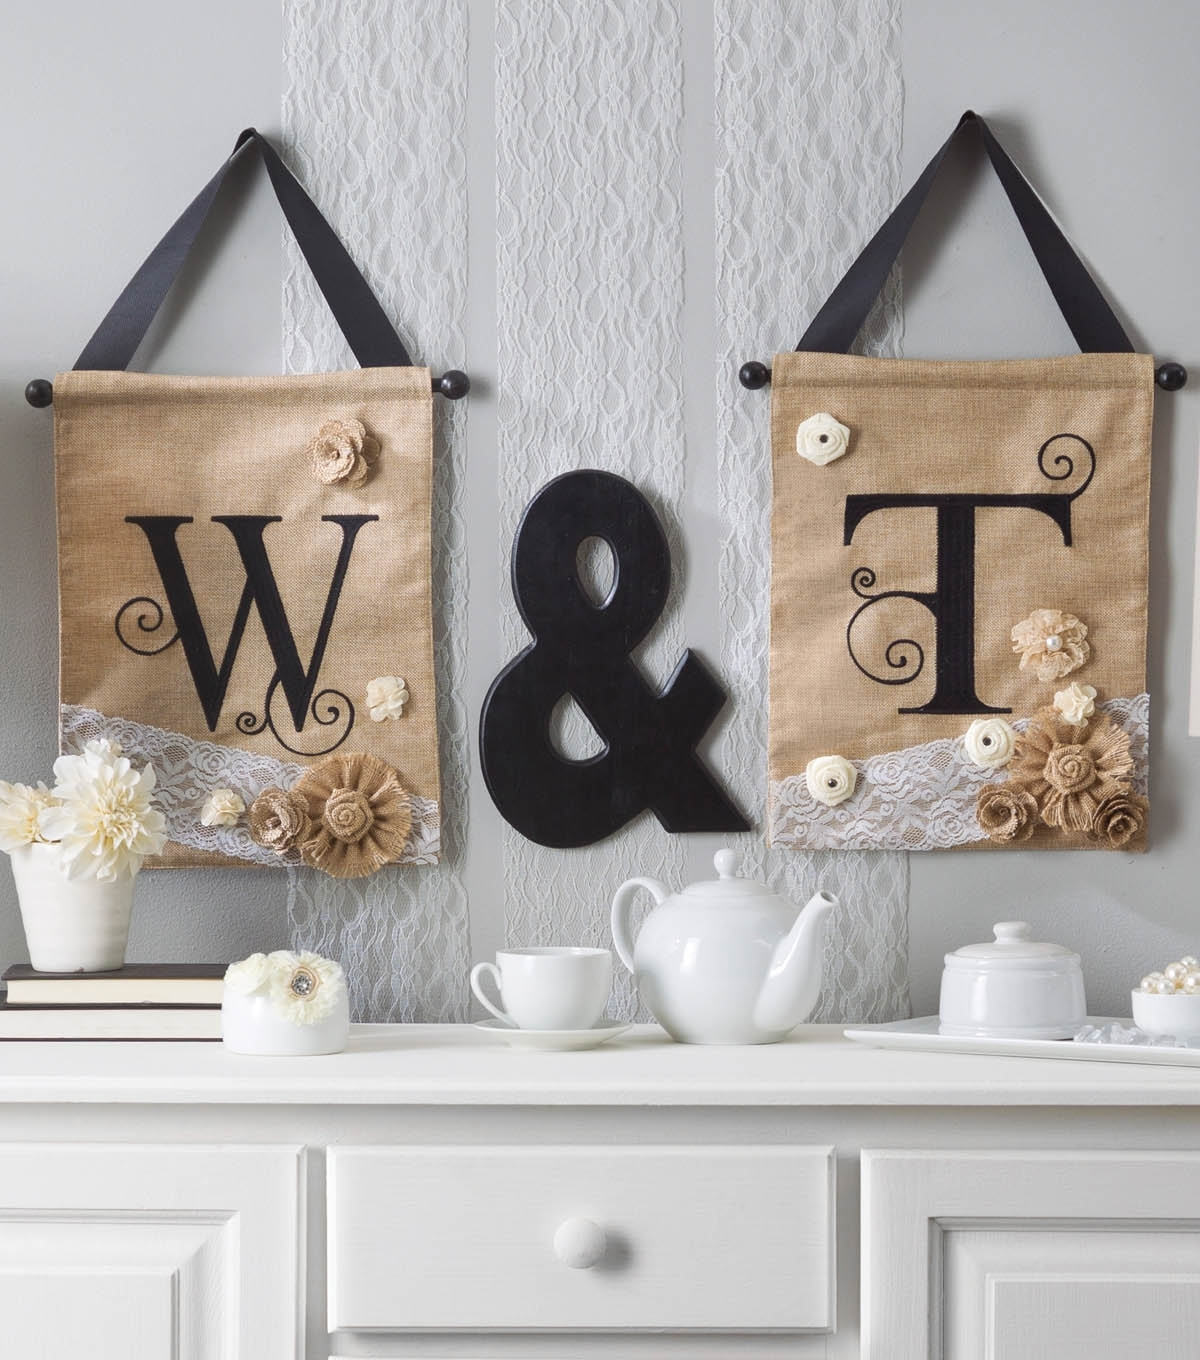 Embellished Initial Letters On Burlap Wall Hangings | Joann Pertaining To Most Recent Joann Fabric Wall Art (View 1 of 15)